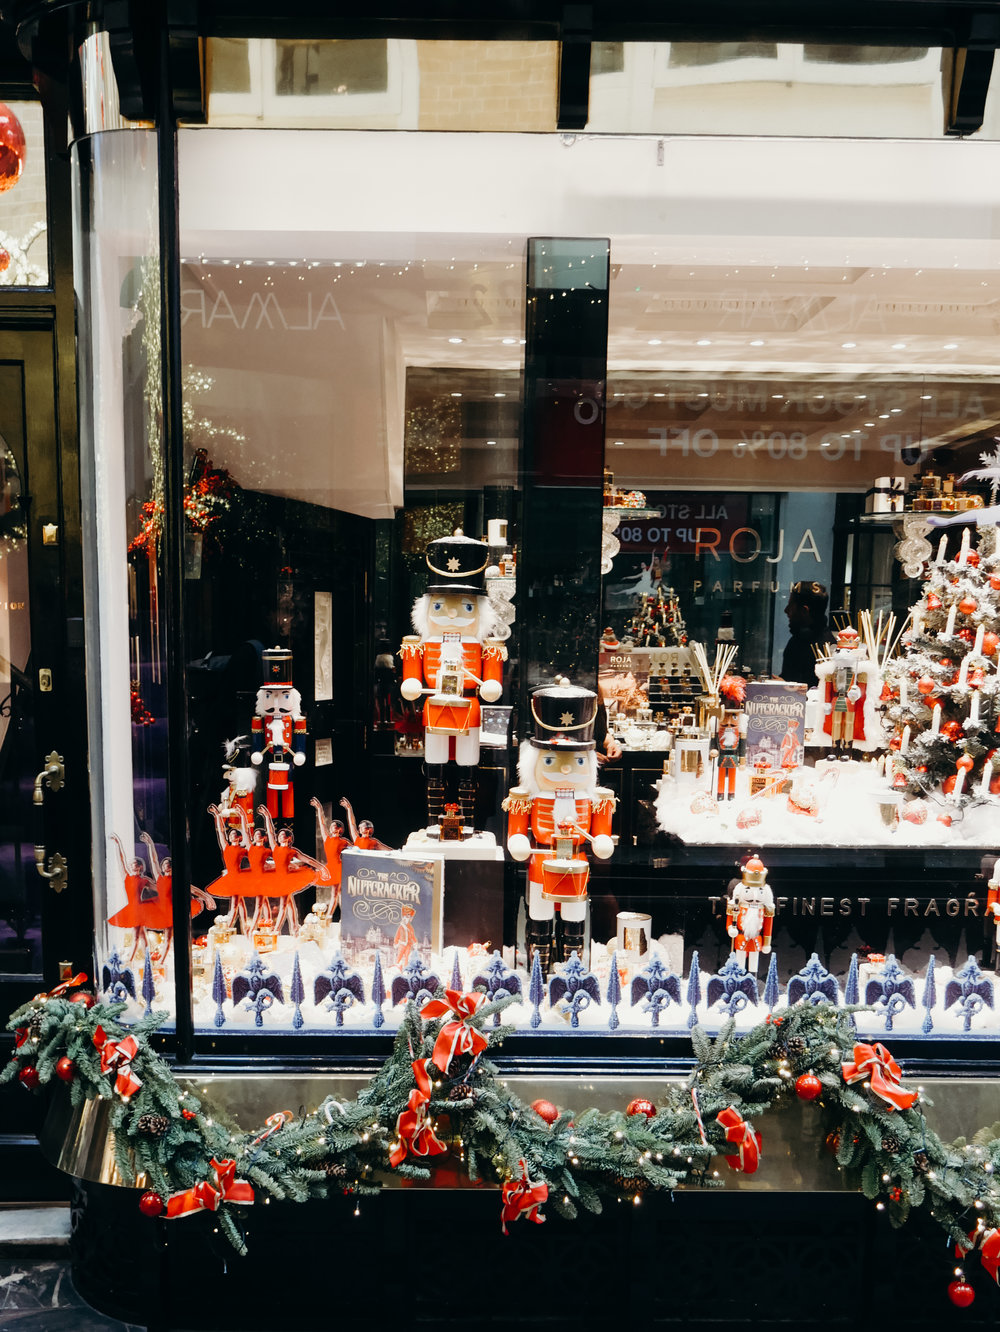 6 Things to Do in London at Christmastime - Burlington Arcade